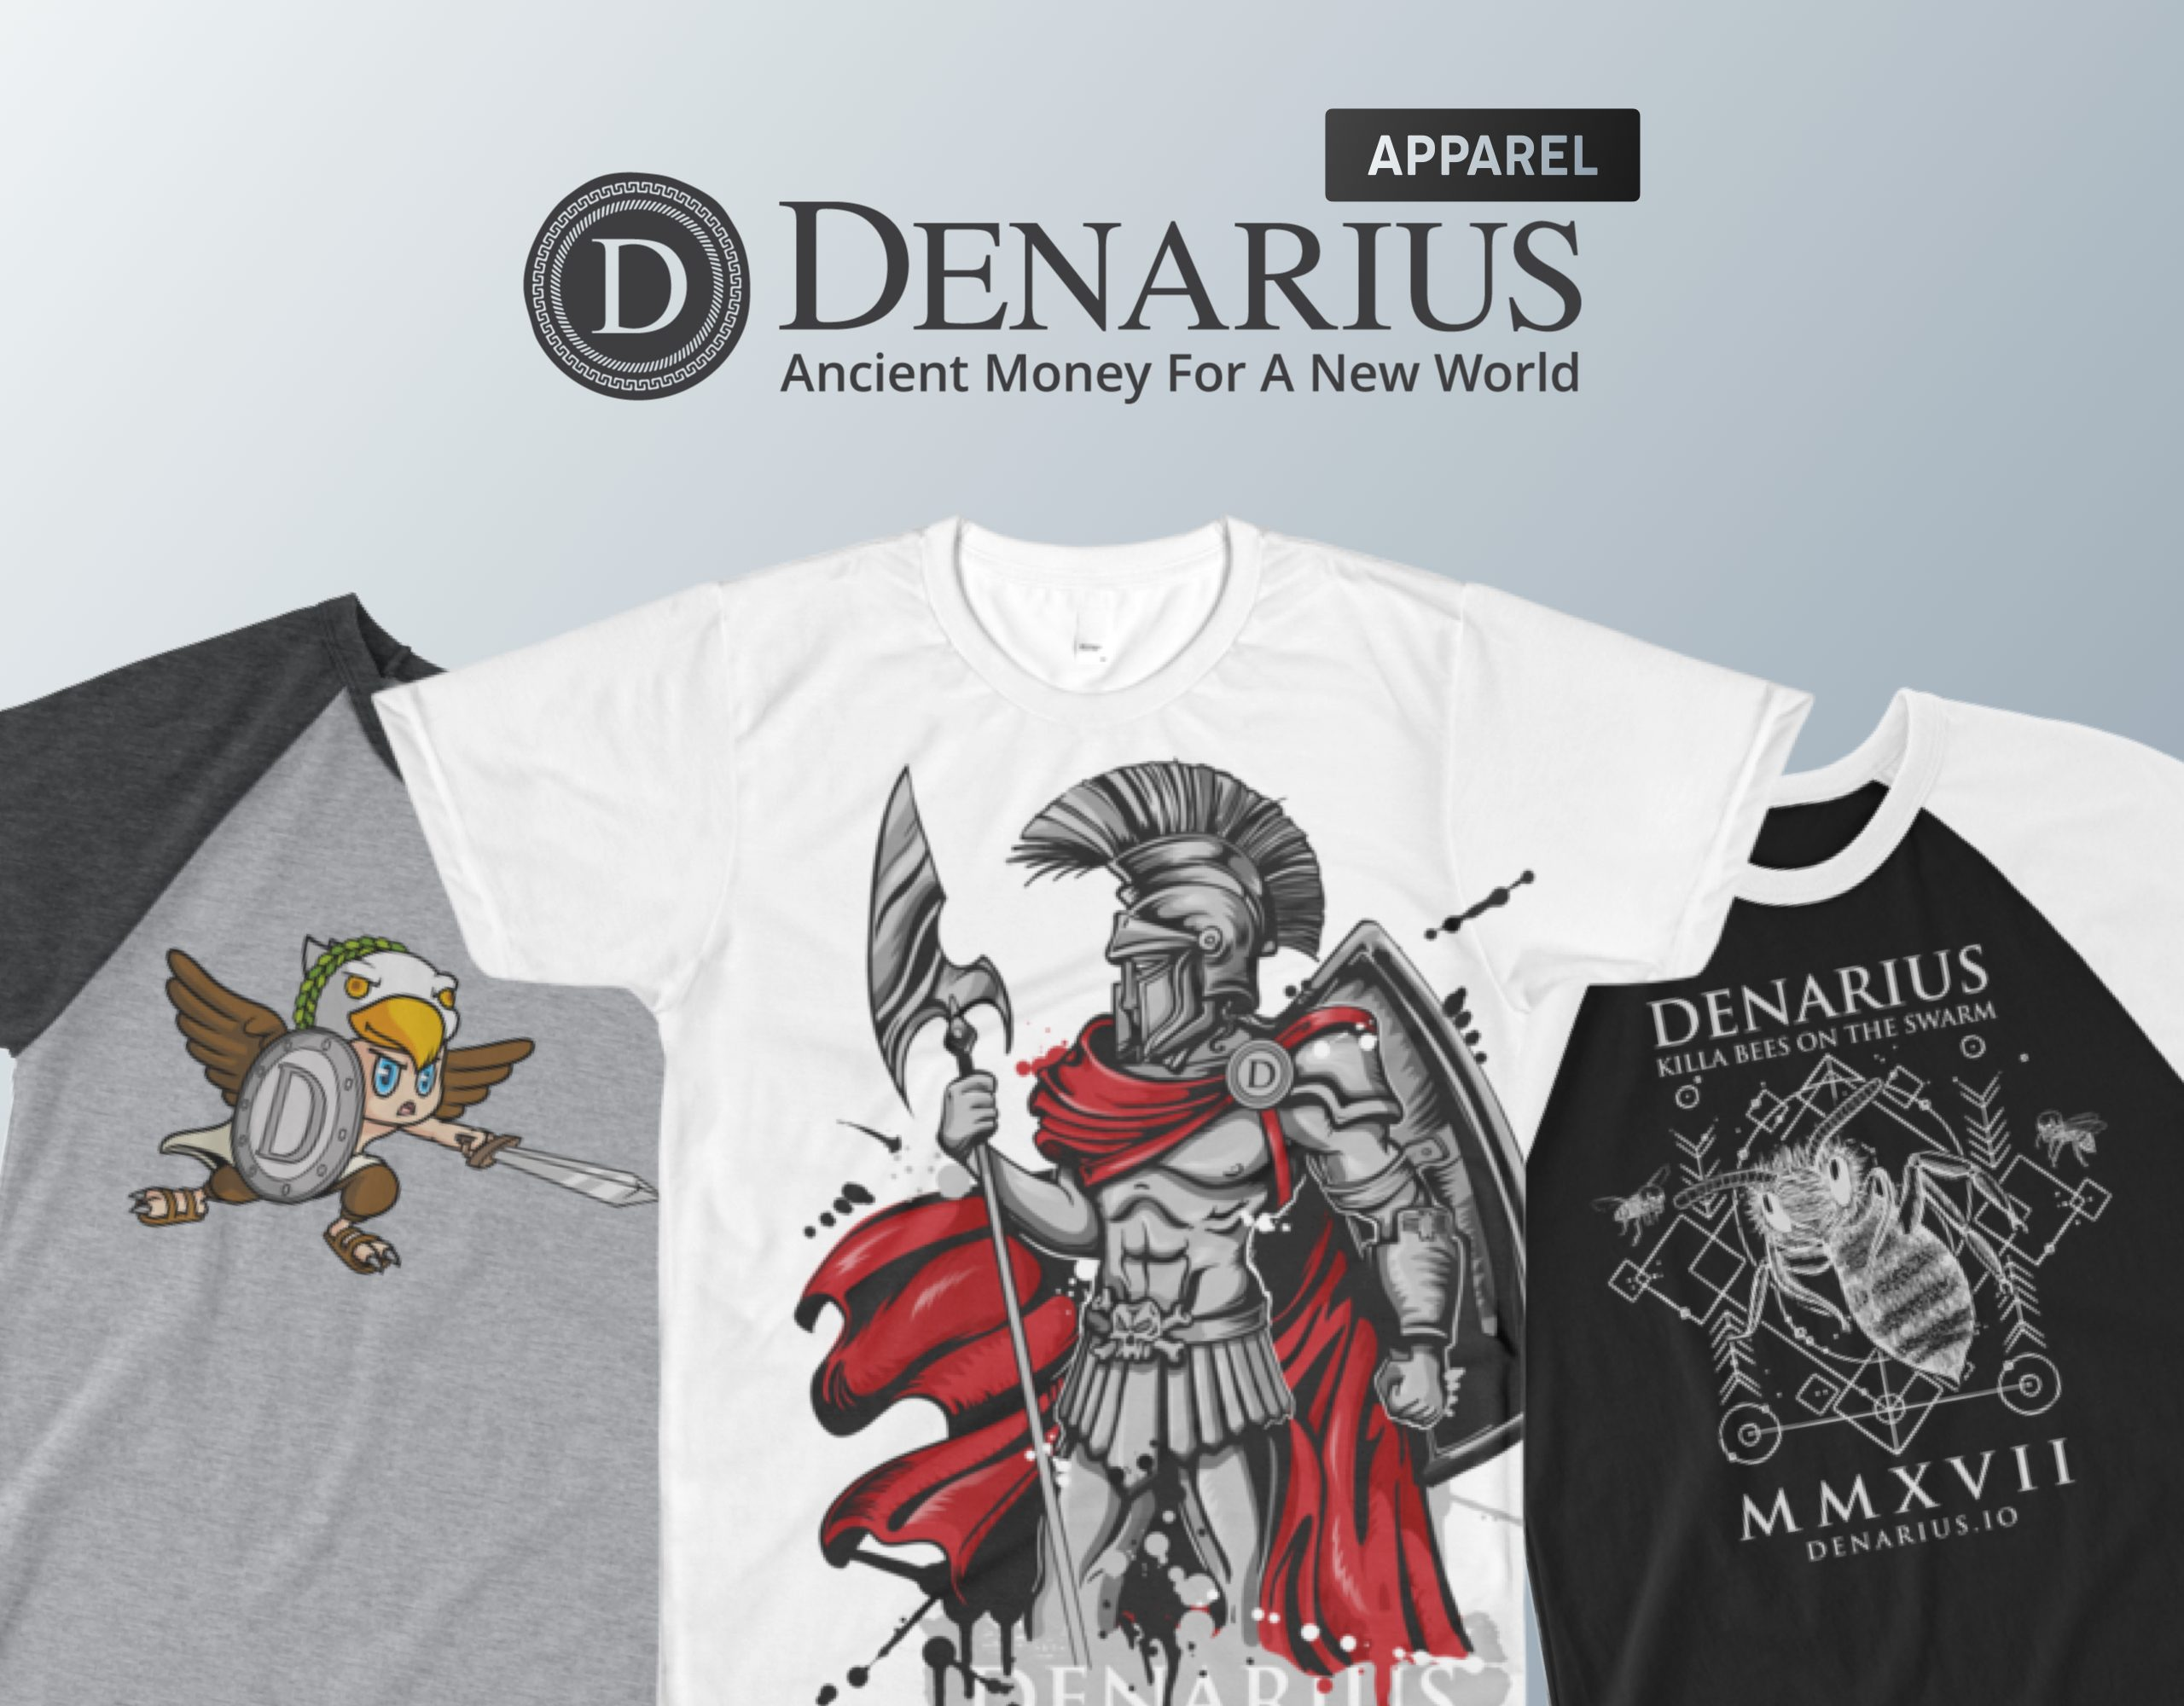 DENARIUS APPAREL